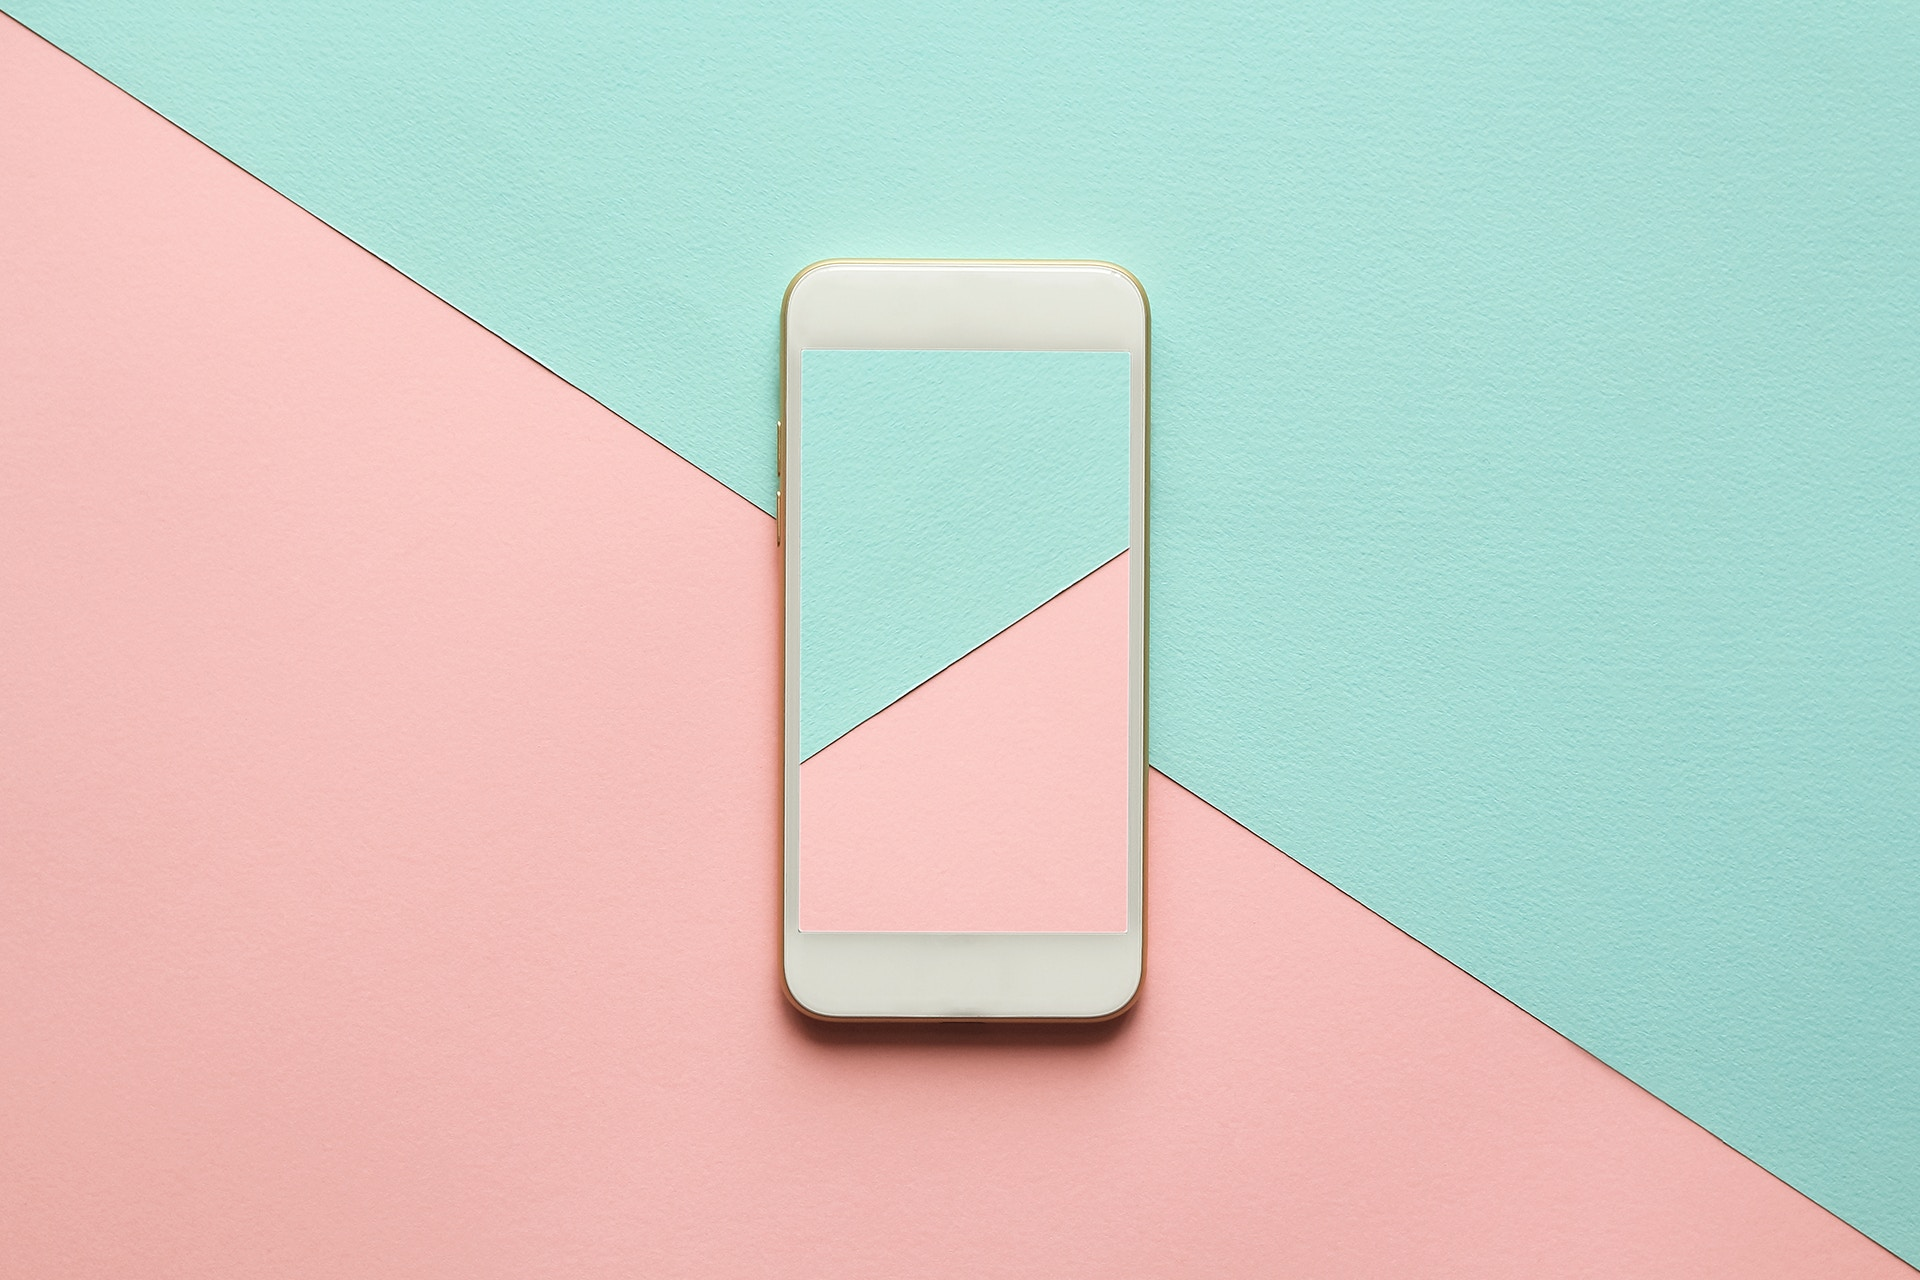 Phone with two opposite colors in angular pattern. Tips for getting out from under an Instagram shadowban